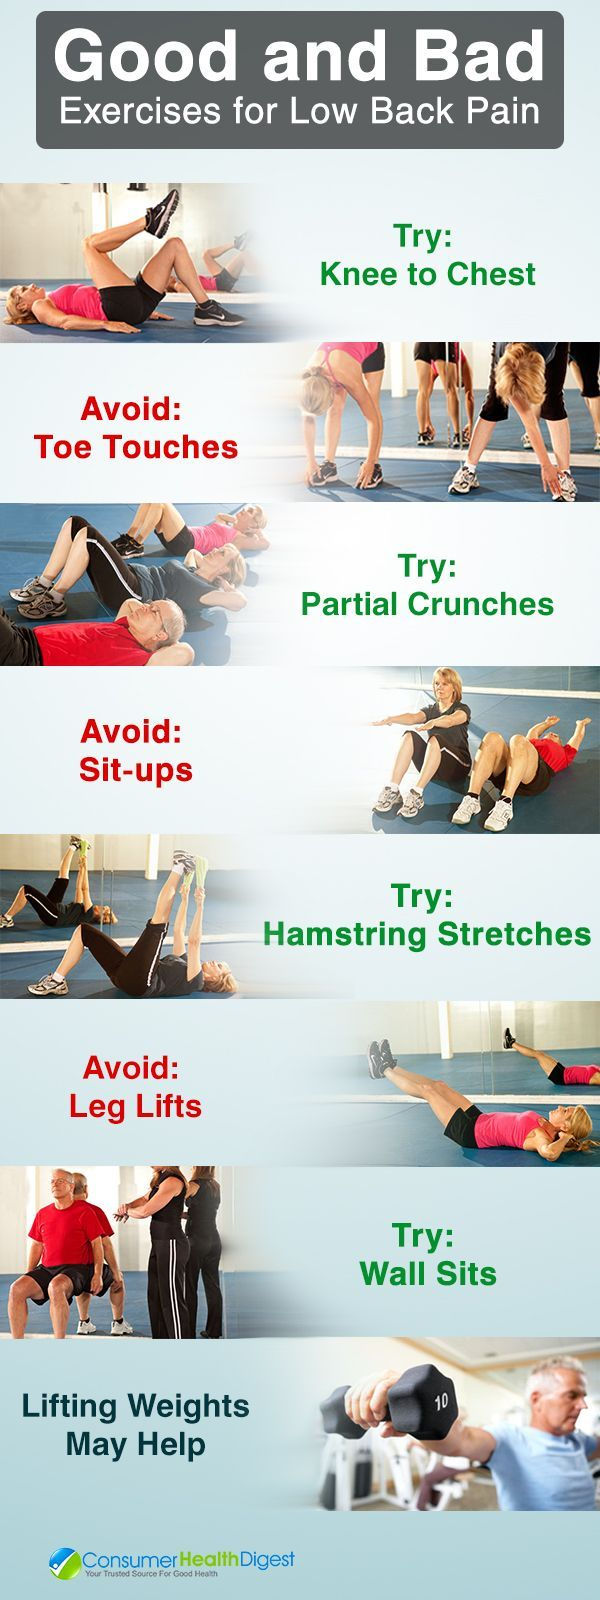 Acute low back pain and physical therapy - Best 25 Severe Back Pain Ideas On Pinterest Severe Lower Back Pain Nerve Weakness And Back Pain